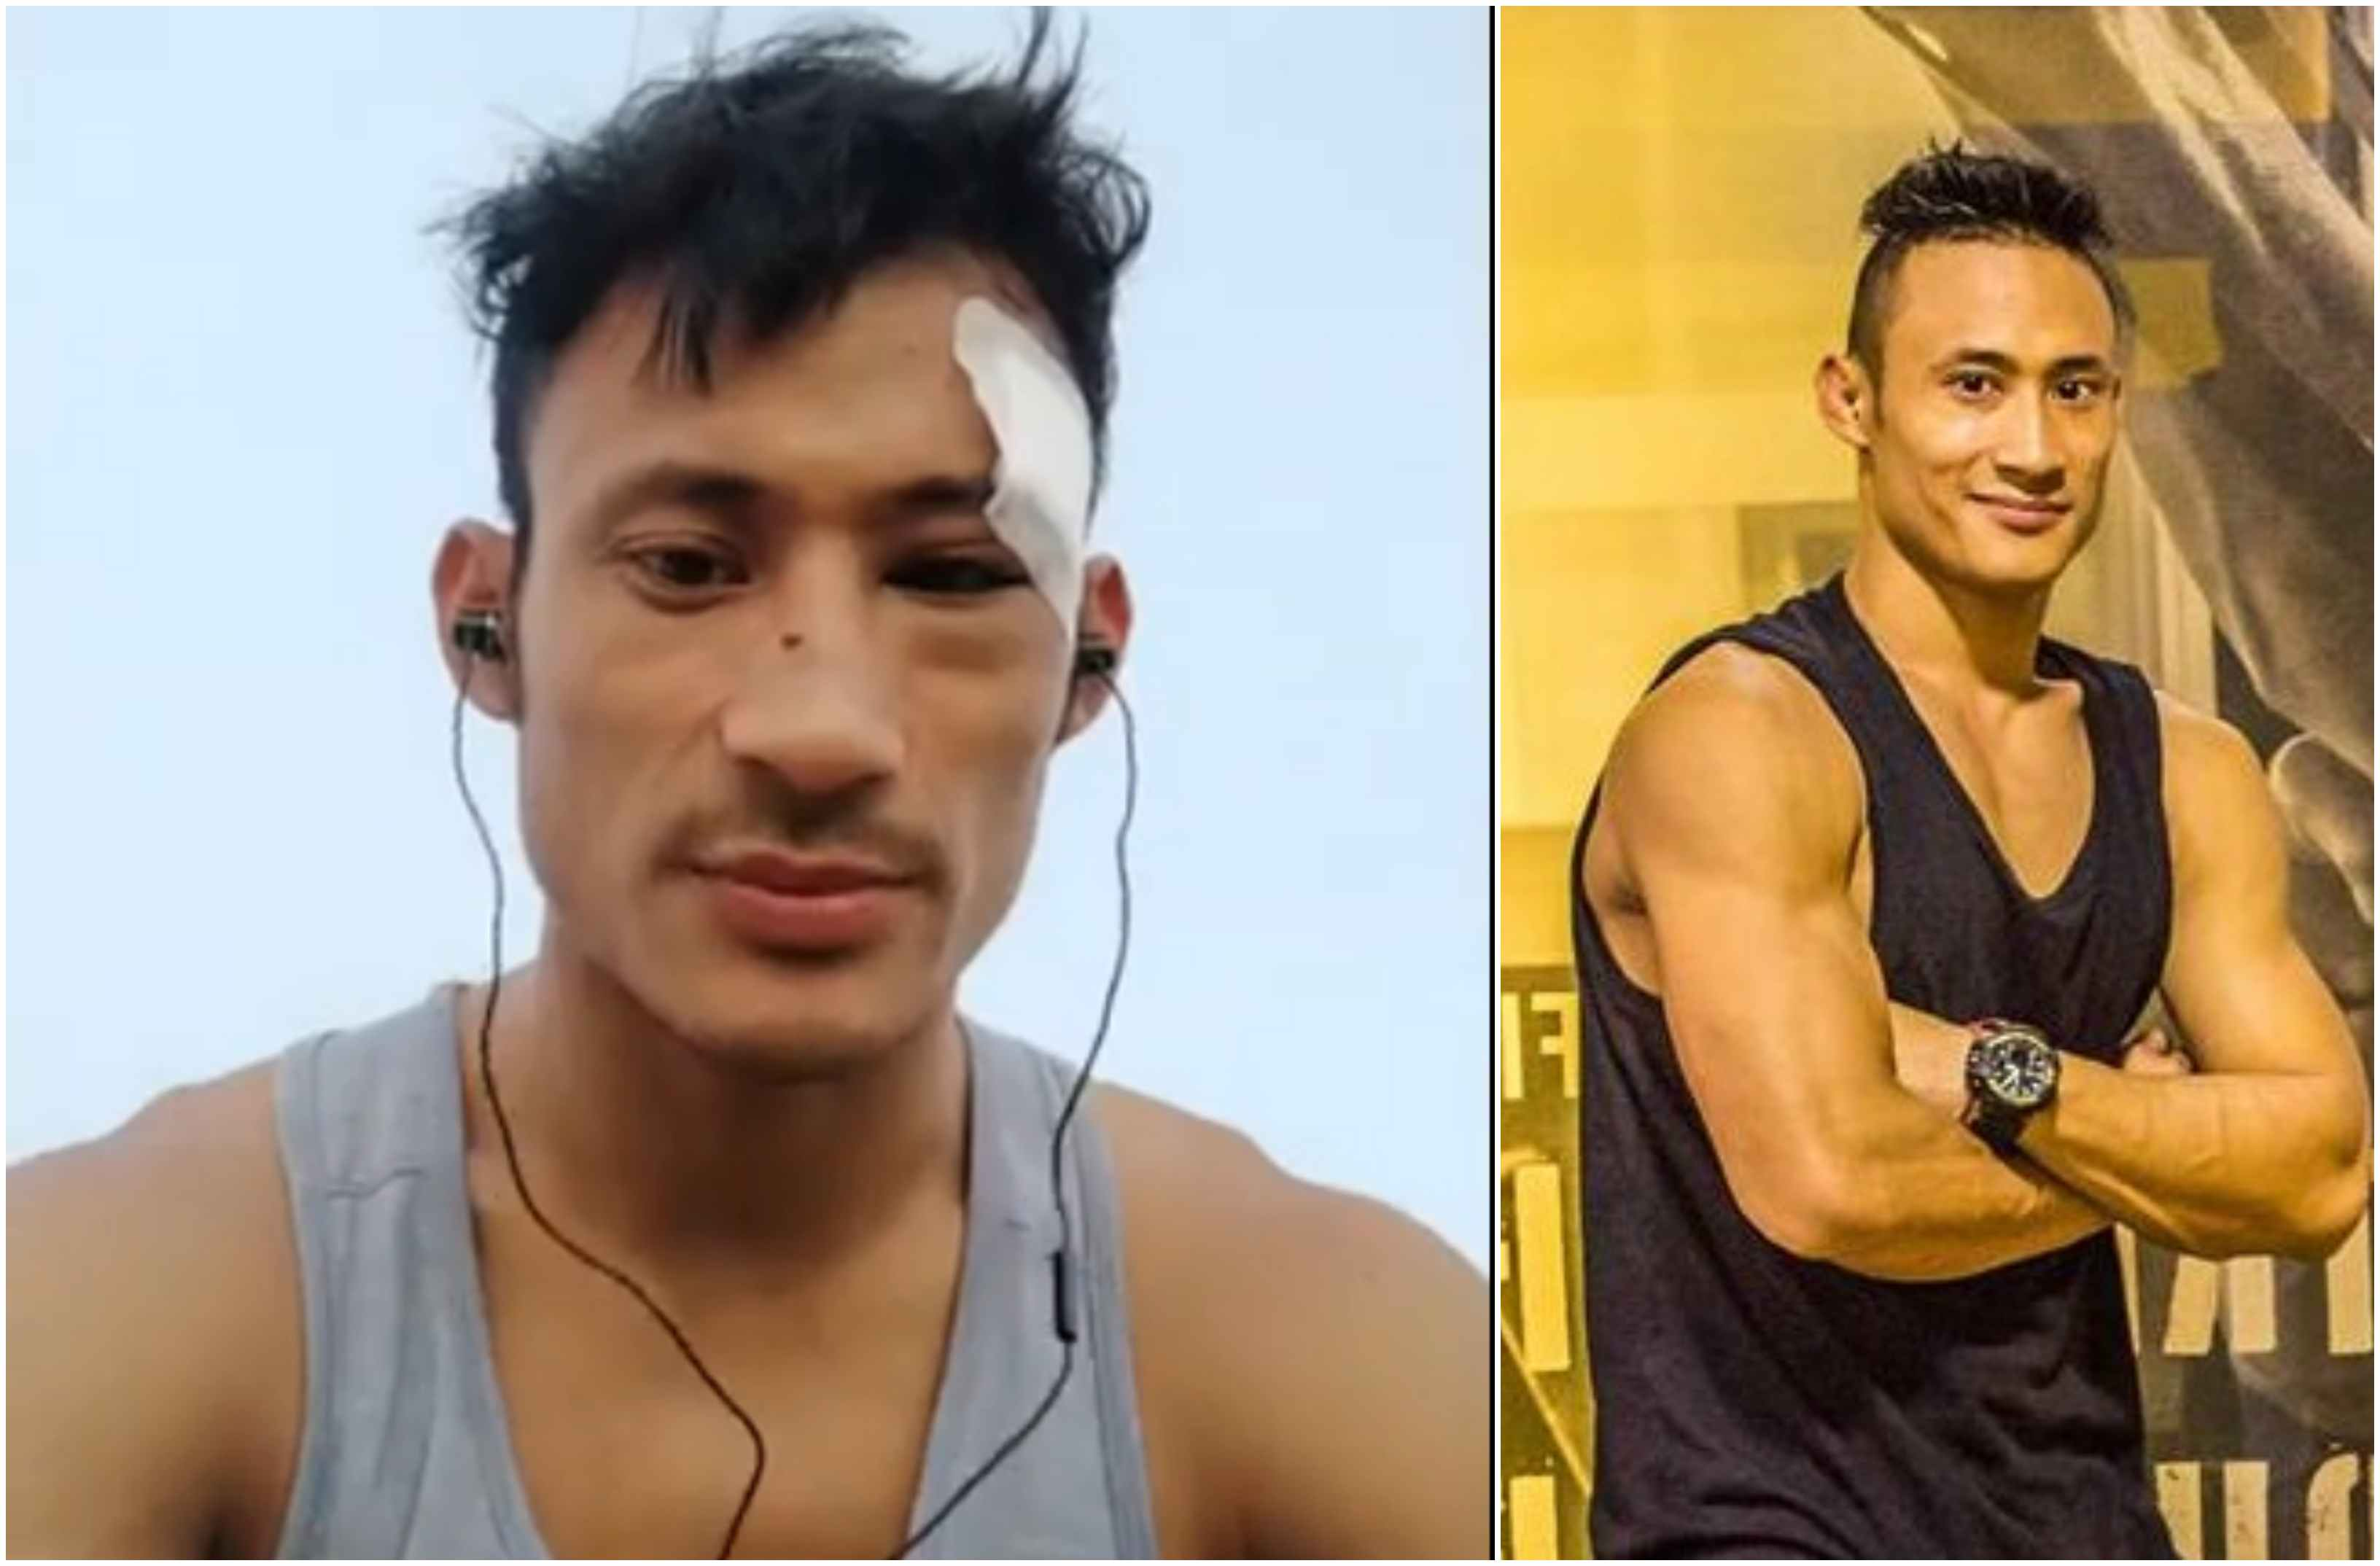 VIDEO: Govind 'Ale' Singh issues emotional message after suffering loss at ONE Warrior Series - Govind